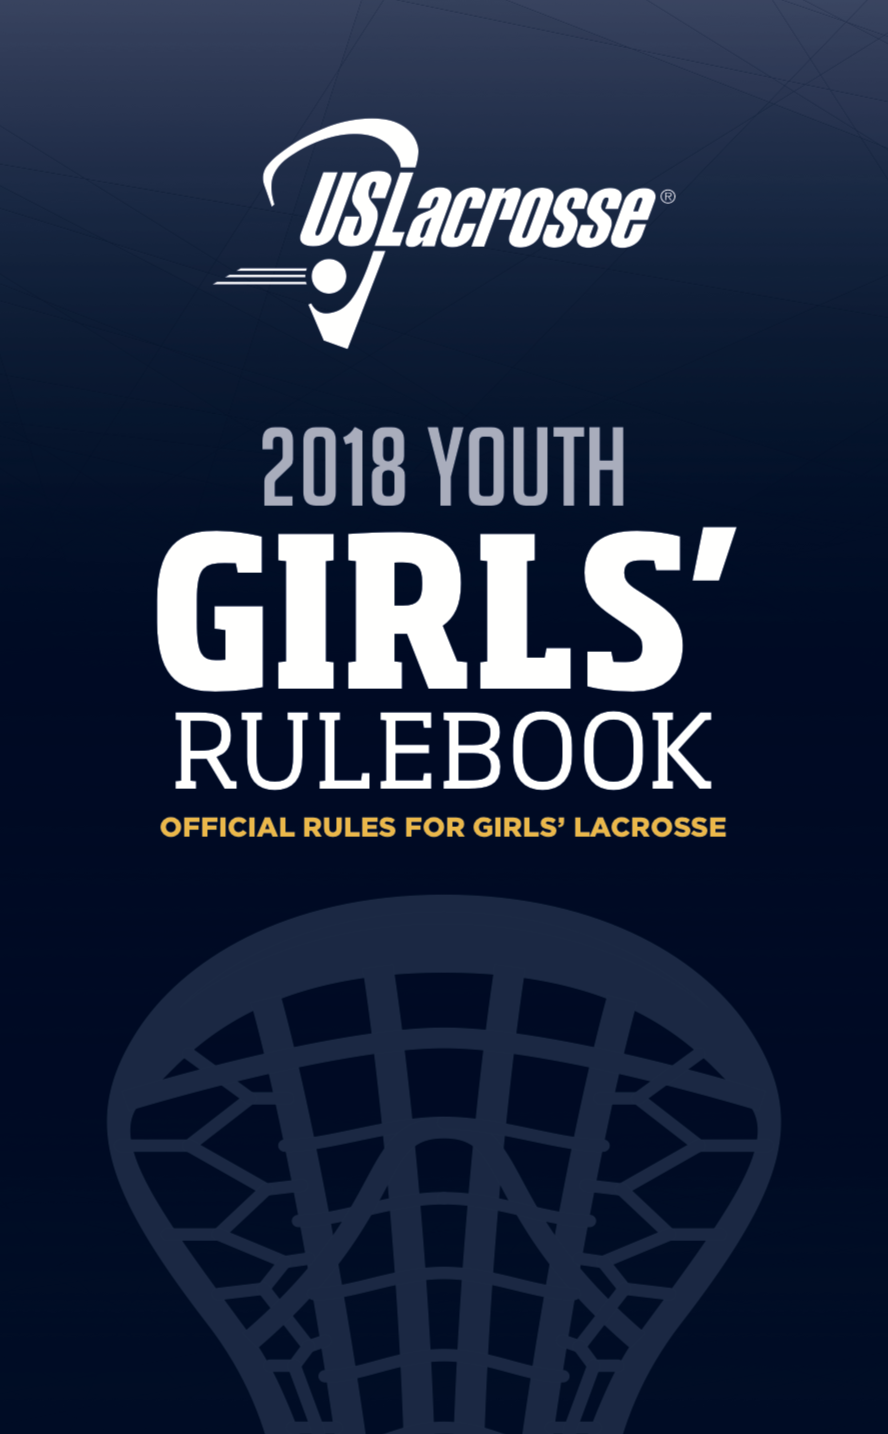 Rulebook for Girls Youth Lacrosse